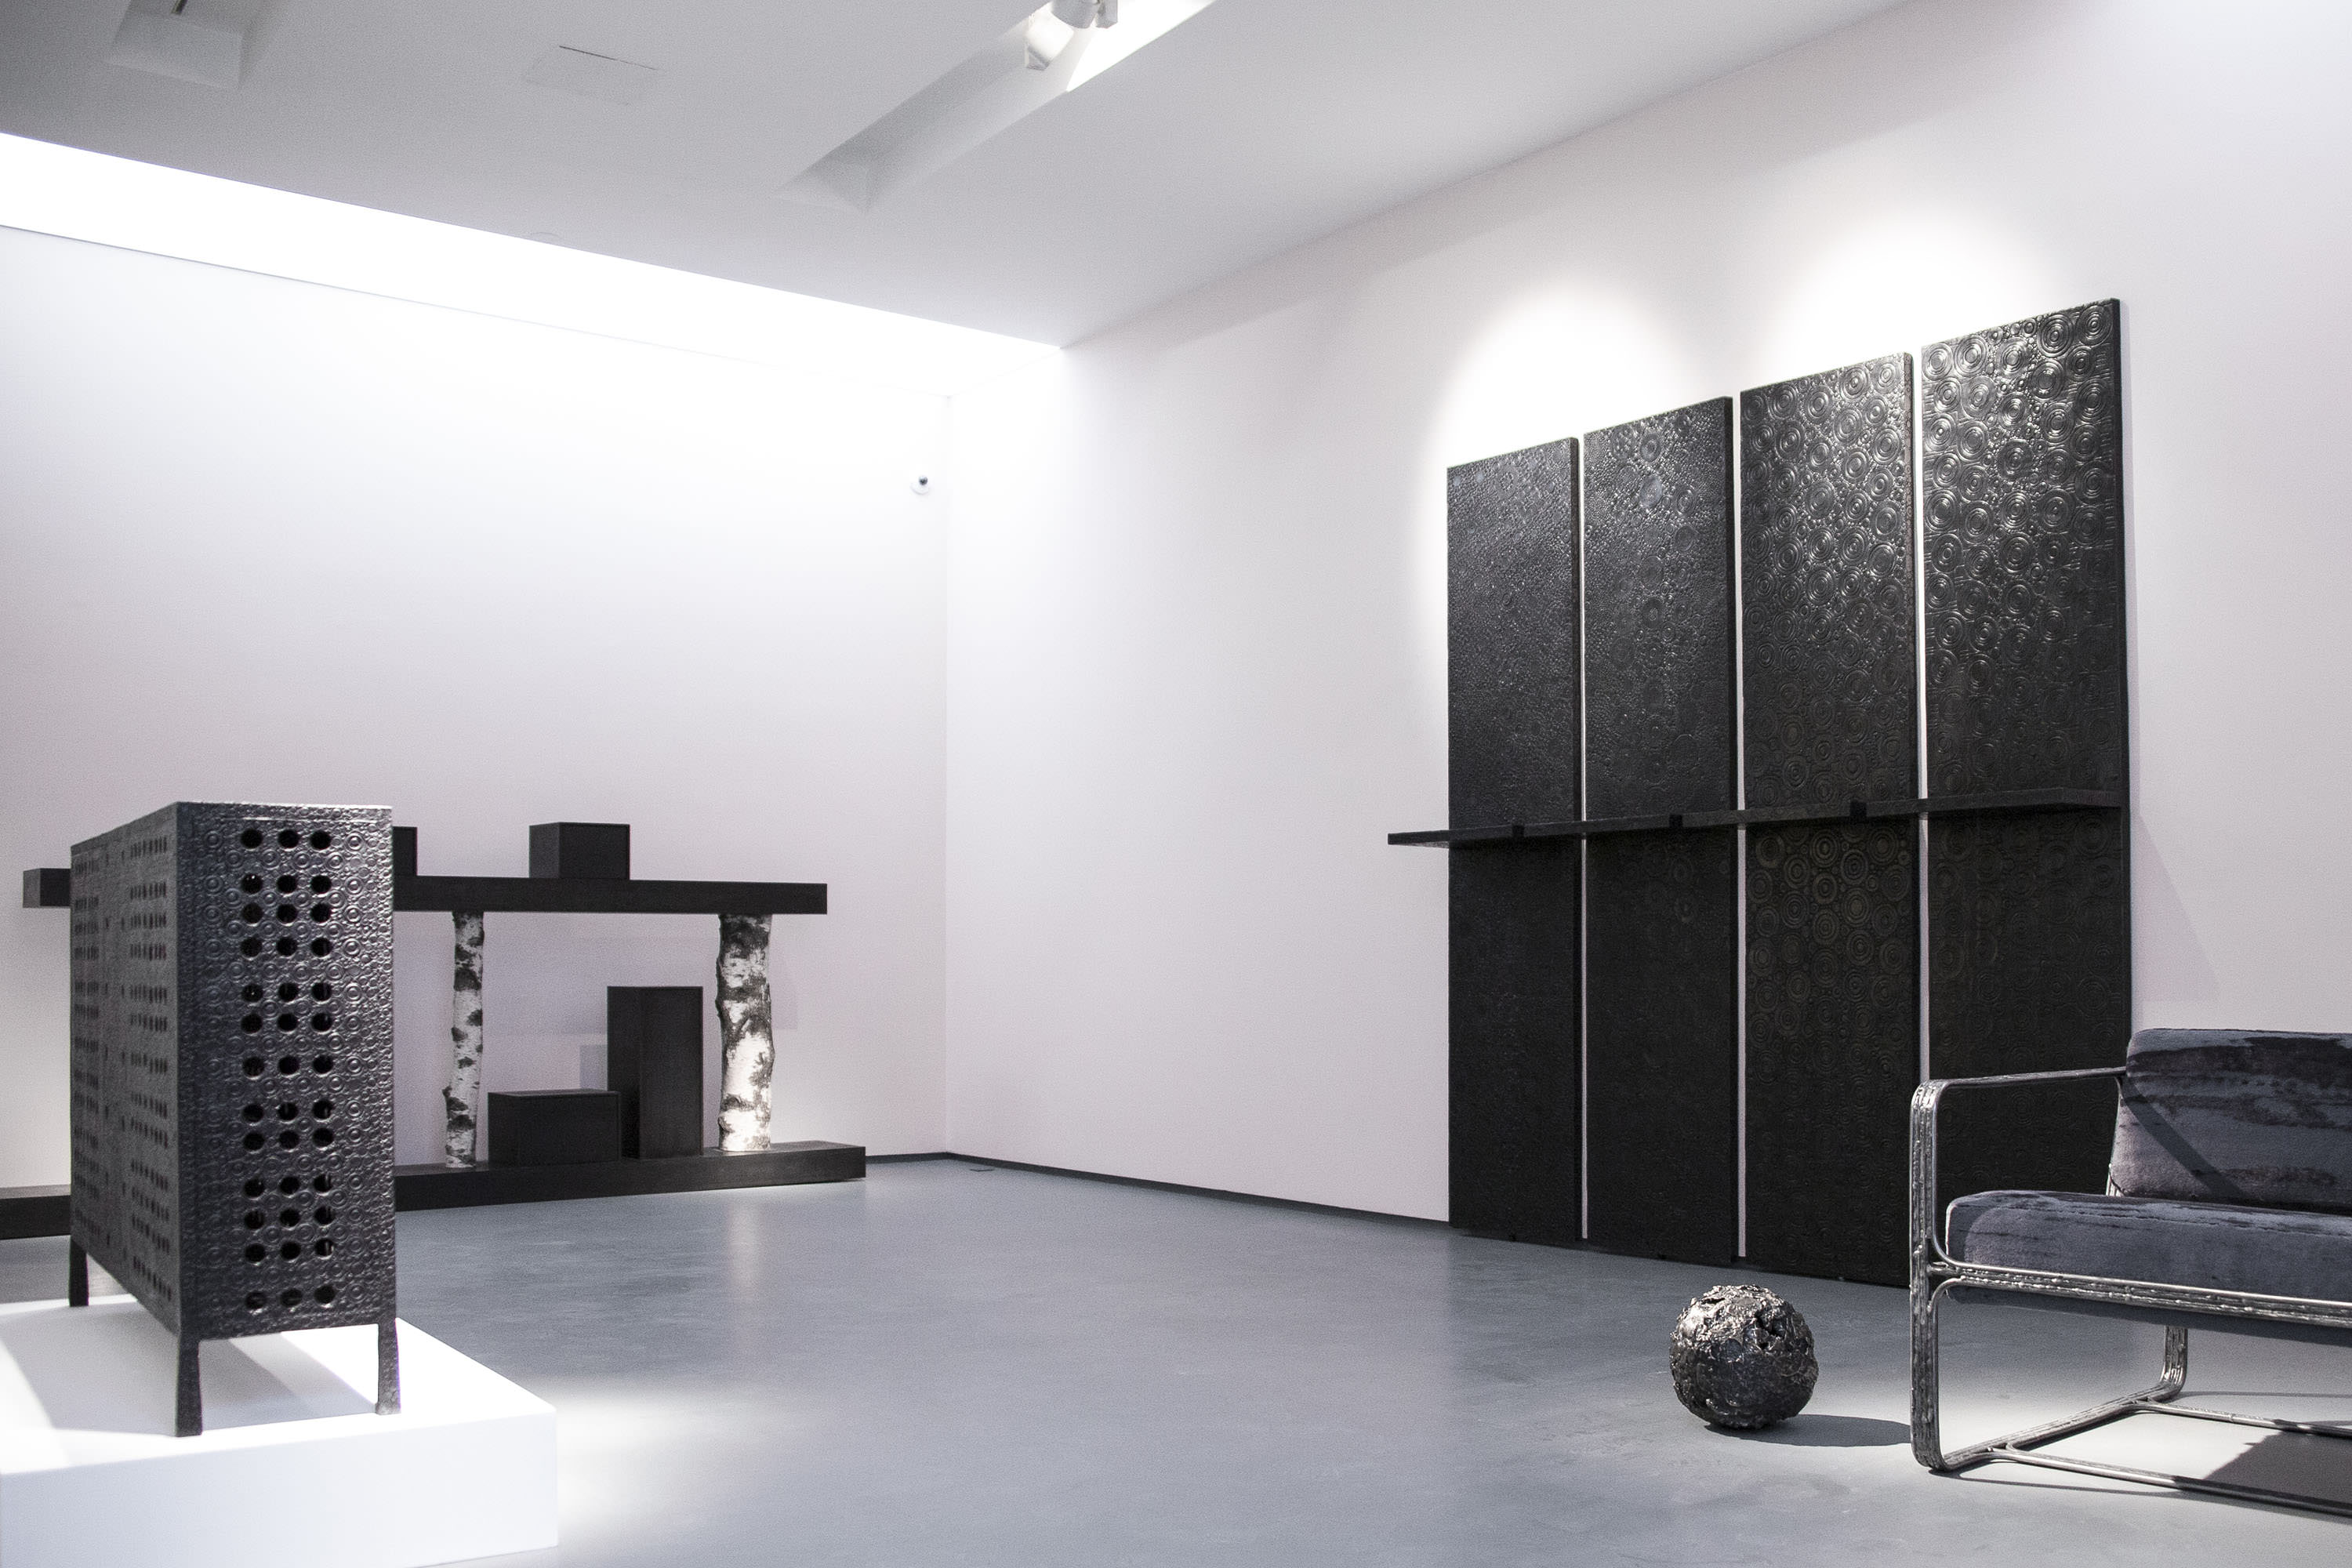 "On the left : Ingrid Donat, ""Buffet Cisco"", 2015, bronze, H87 L141 W28.5 CM  On the right : Andrea Branzi, ""Tree 6B"", 2011, birch and patinated aluminium, H135 L300 W40 CM."